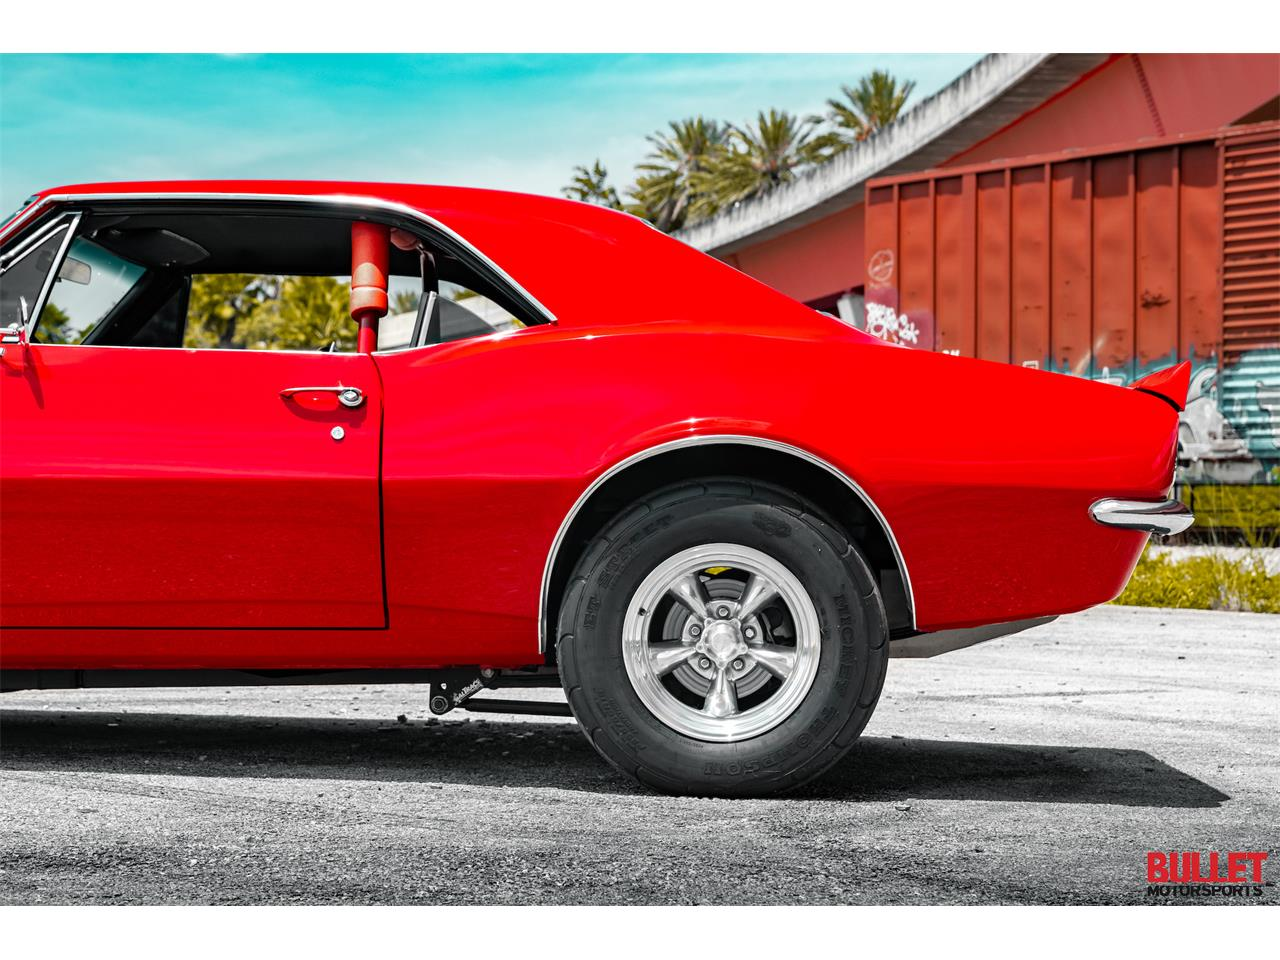 Large Picture of Classic 1967 Chevrolet Camaro located in Fort Lauderdale Florida - $49,950.00 Offered by Bullet Motorsports Inc - QIJZ